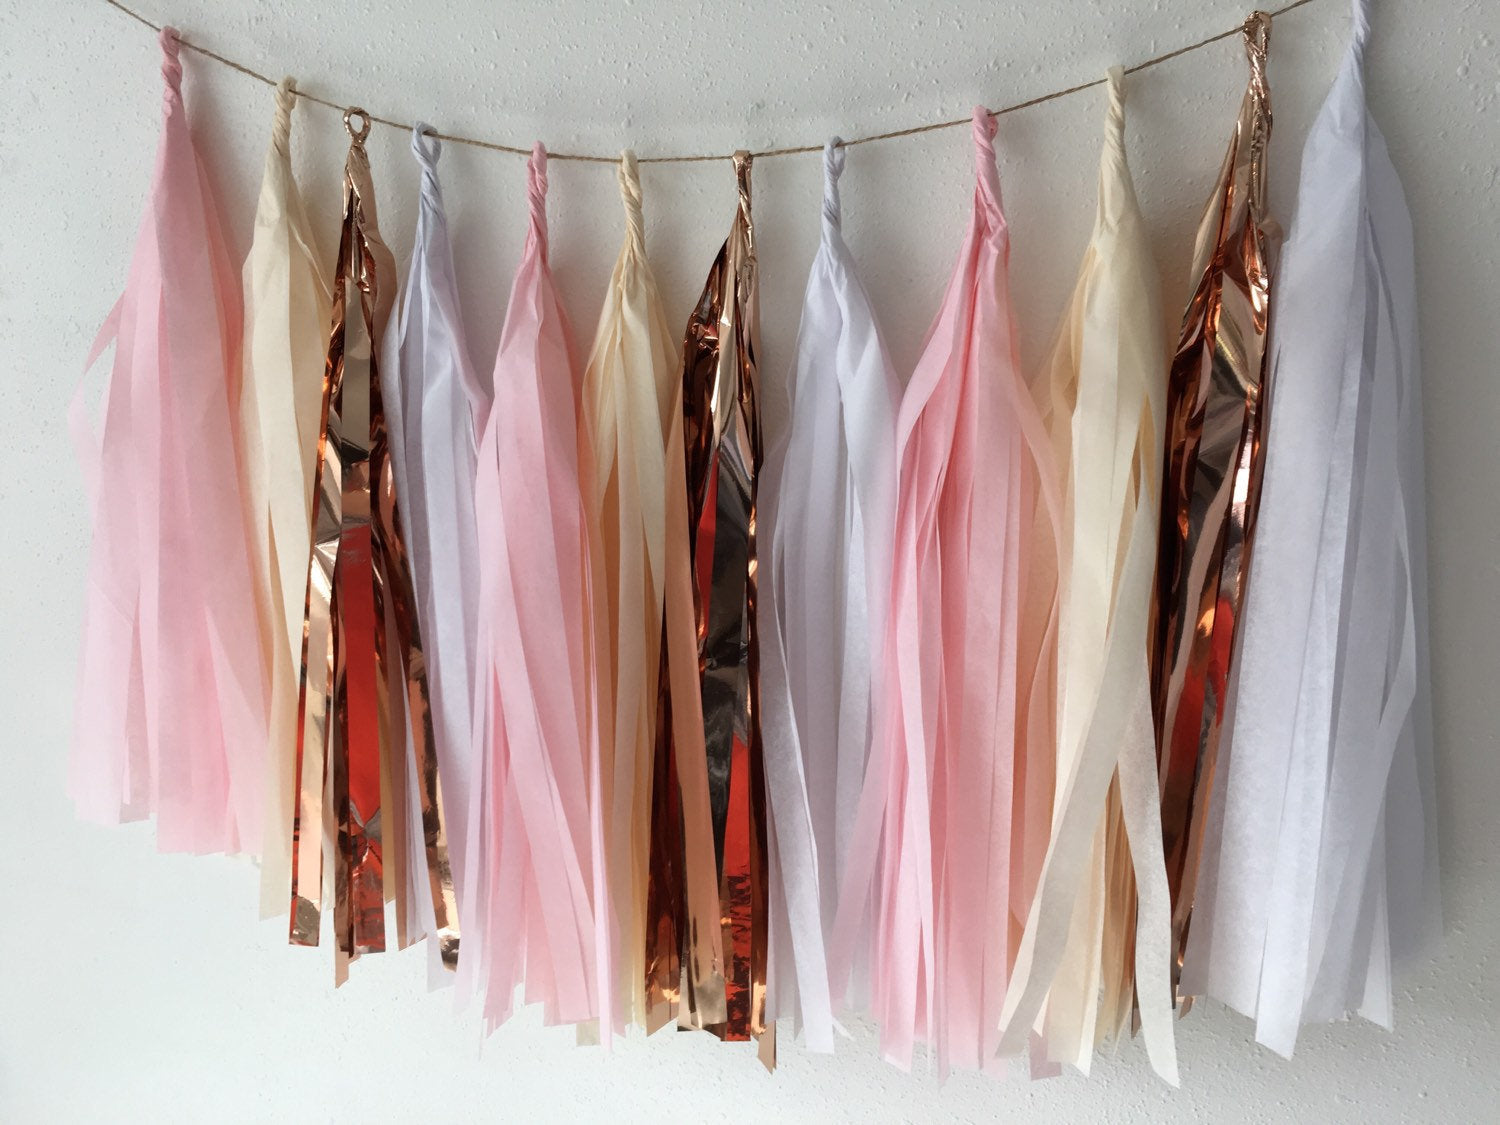 Tassel garland rose gold, Rose Gold Party decorations, tissue tassel garland, Rose gold wedding decor, shower, birthday party decor